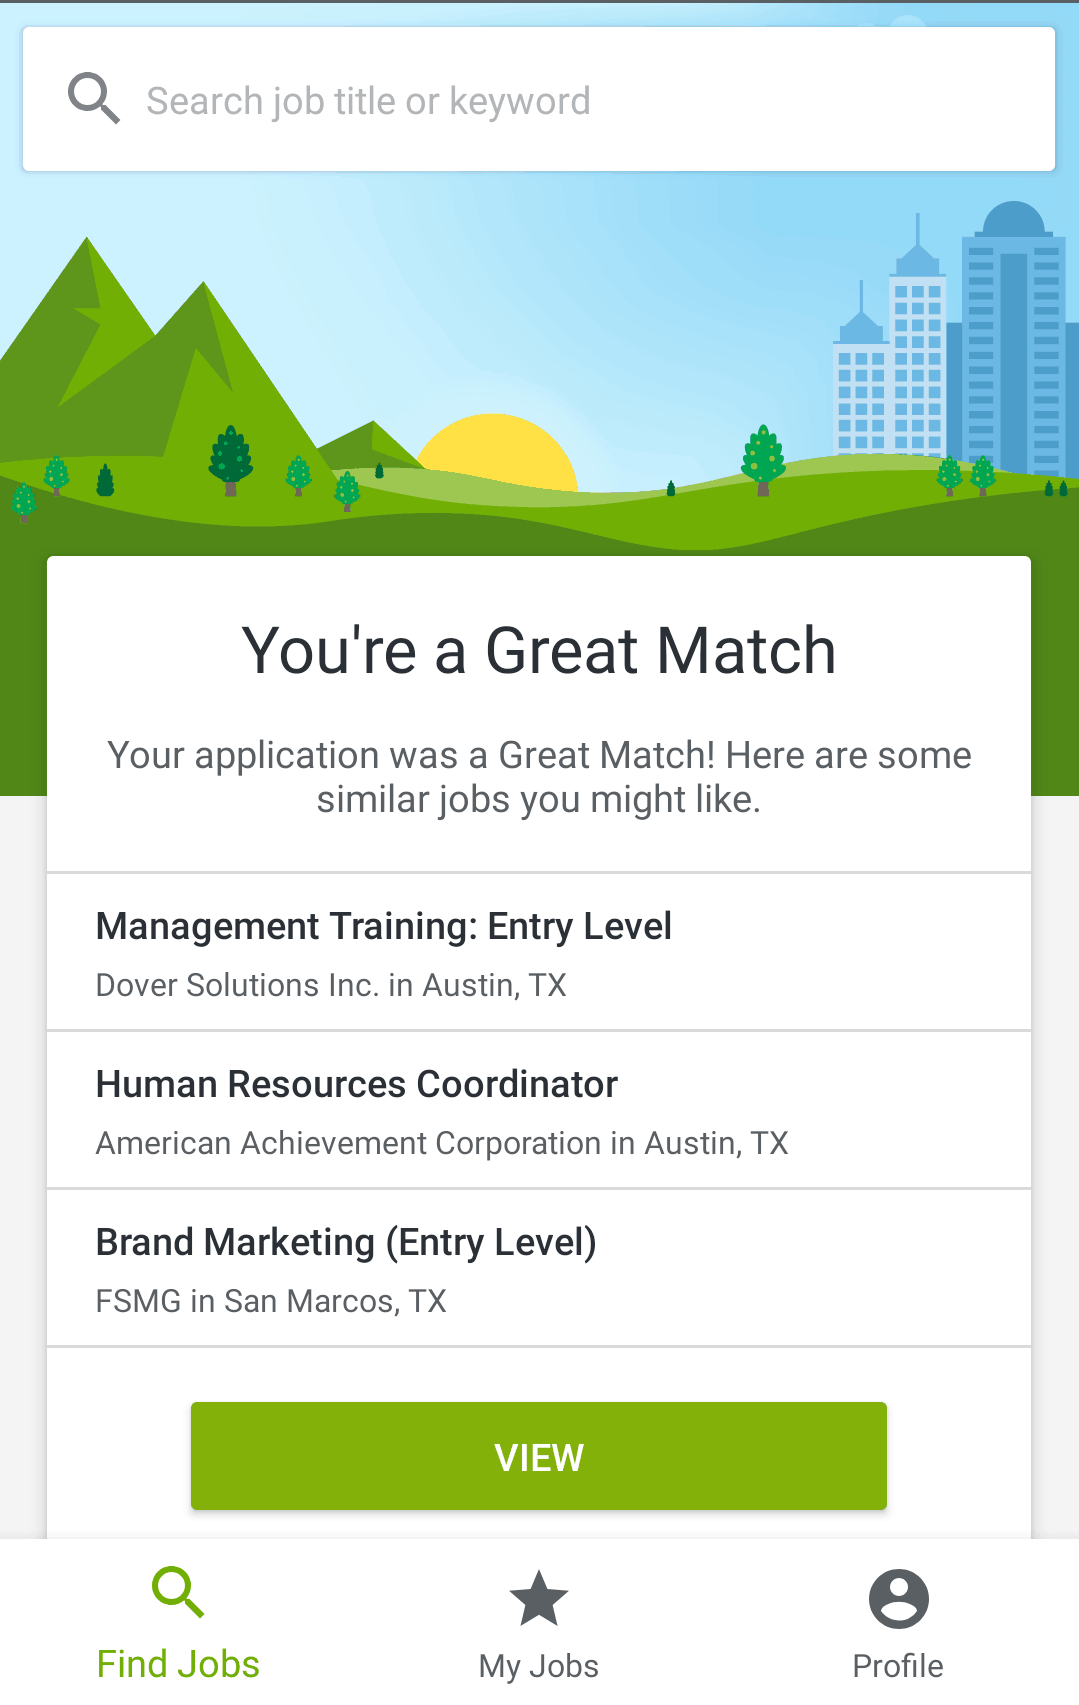 Upload your Resume for Smart Matches